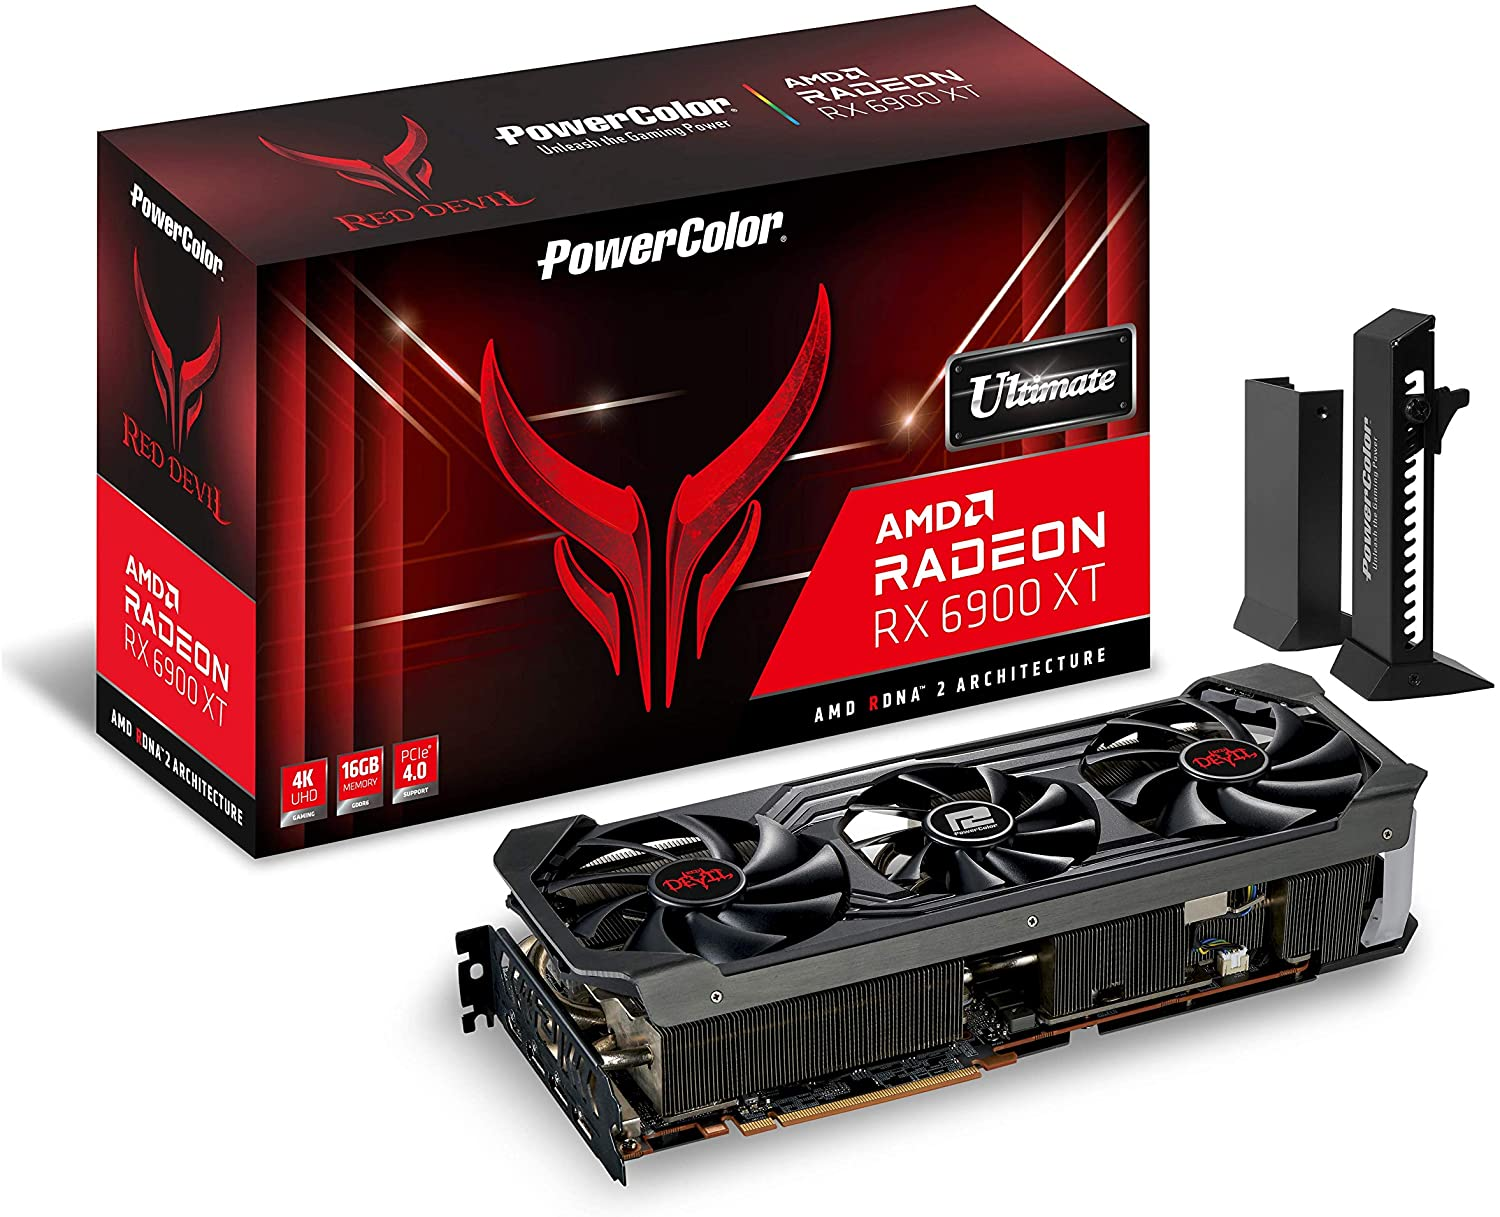 PowerColor Red Devil AMD Radeon RX 6900 XT Ultimate Gaming